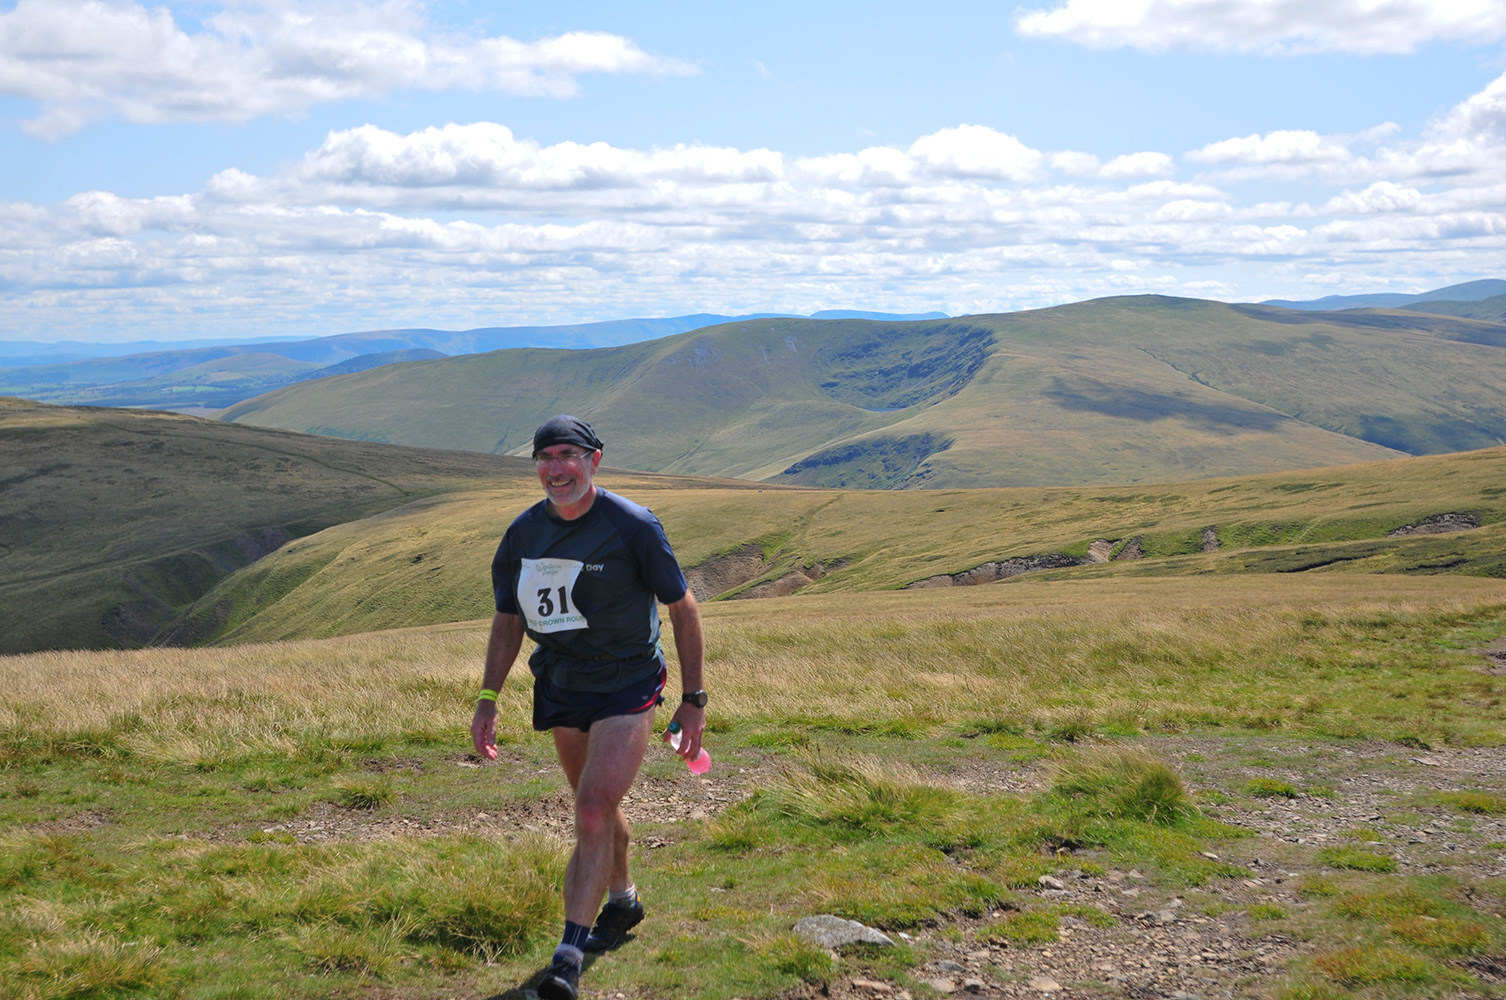 Fell runner from Hesket Newmarket, Cumbria, on the summit of High Pike towards the end of the Old Crown Round in 2009. Pearson won the event, completing the 24 mile round of the Caldbeck Fells in 4hrs 14minutes.